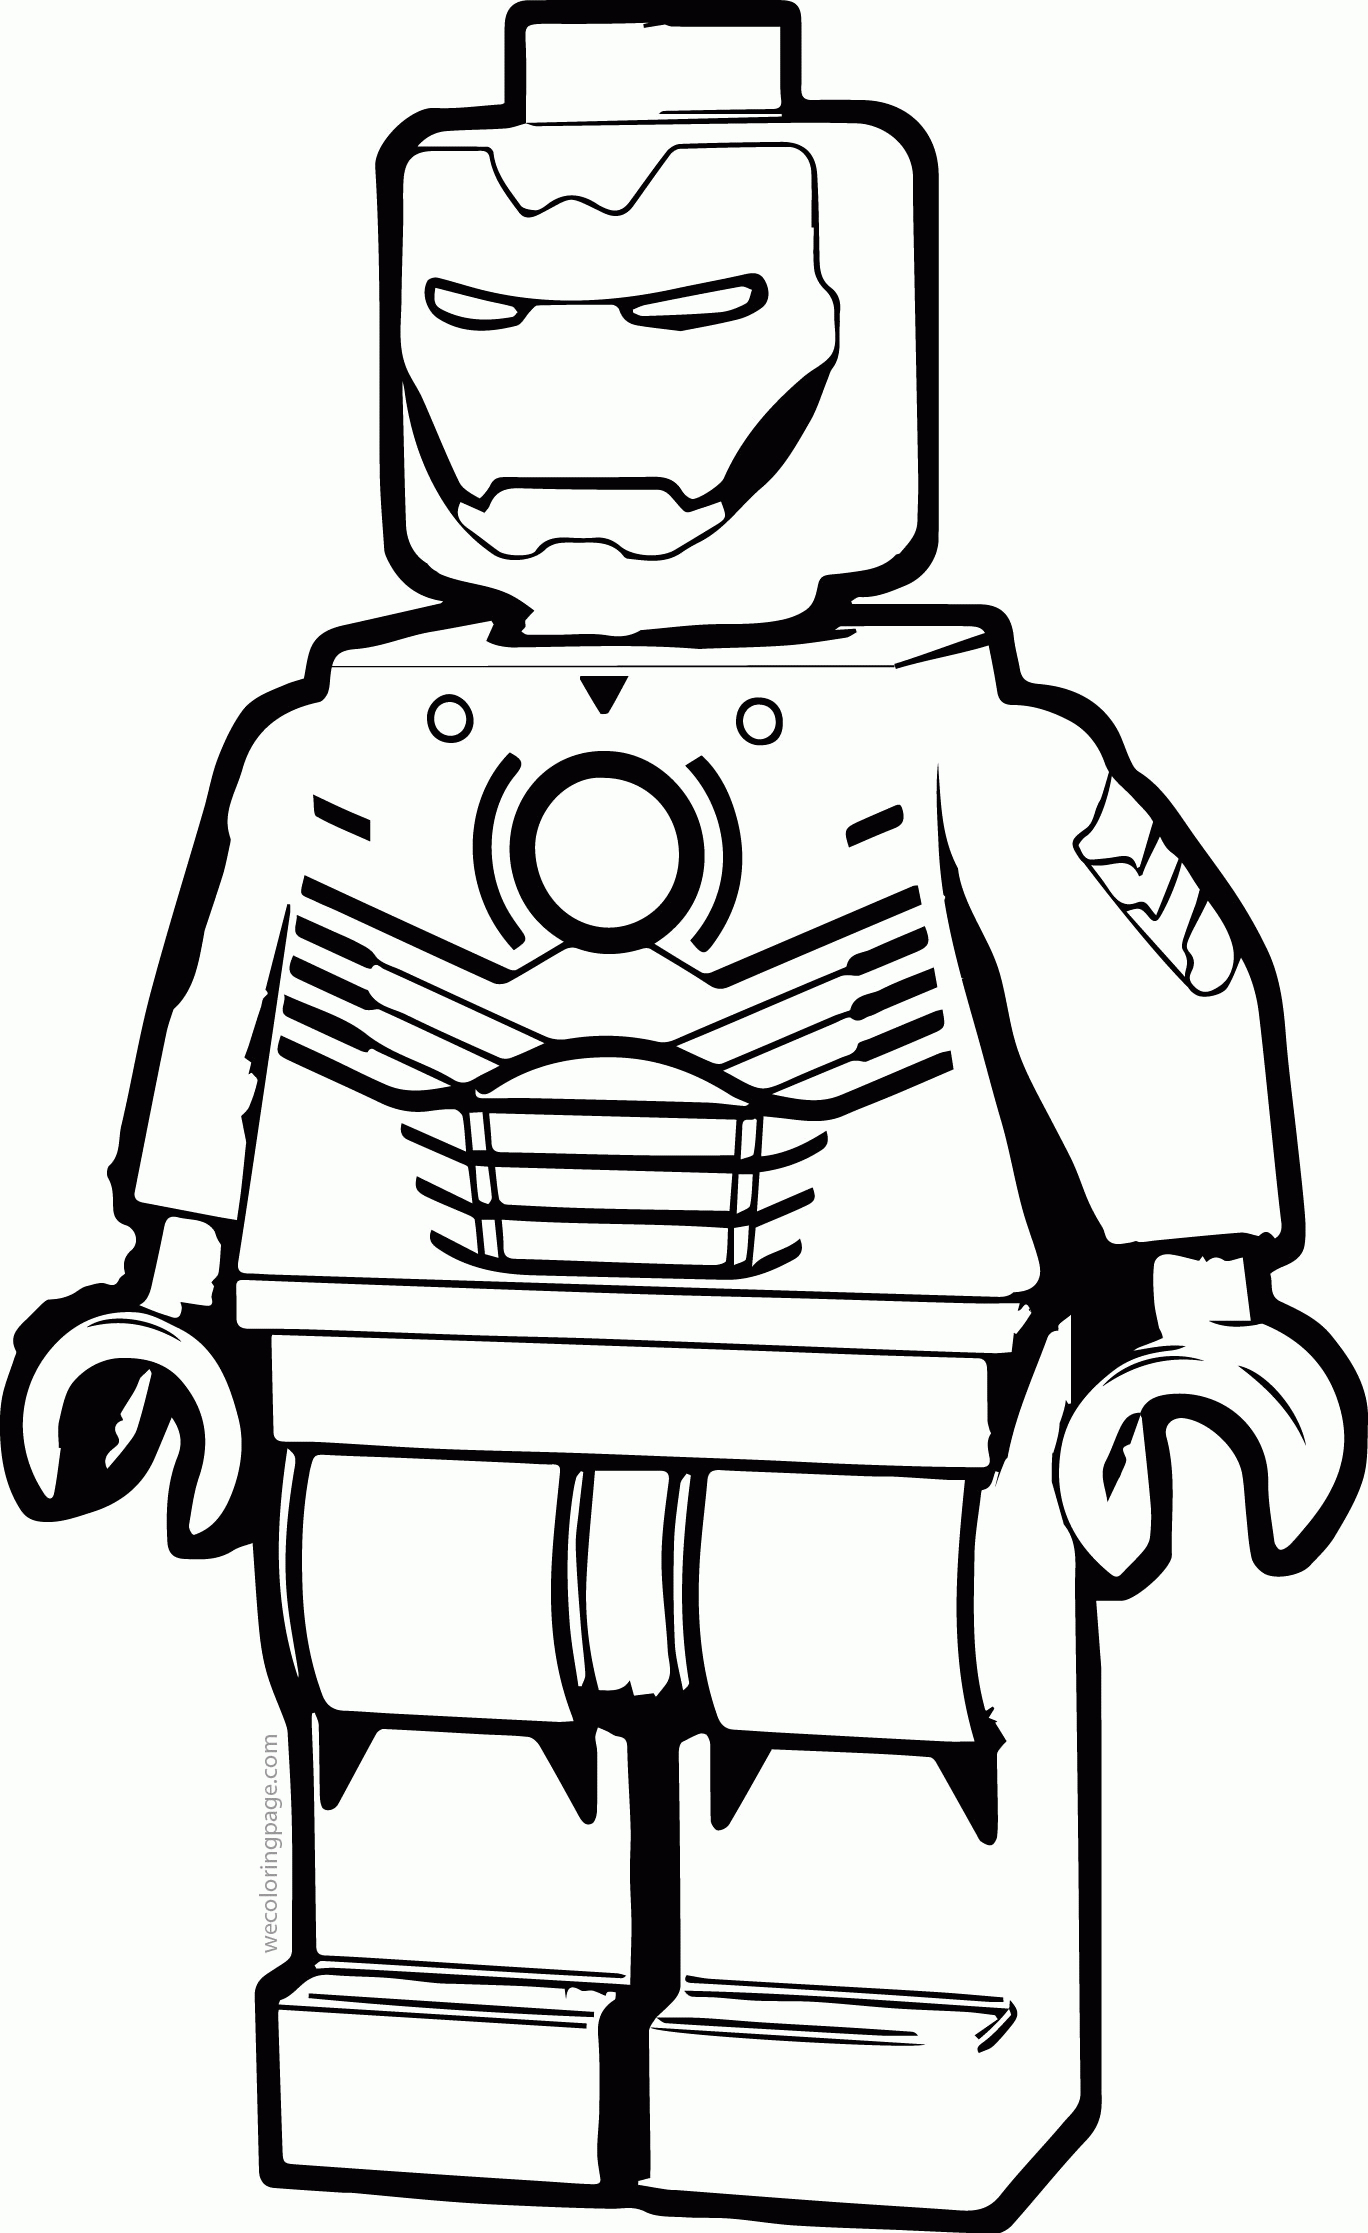 image relating to Lego Man Printable known as Ironman Coloring Web pages Lego Male Coloring Site Ironman